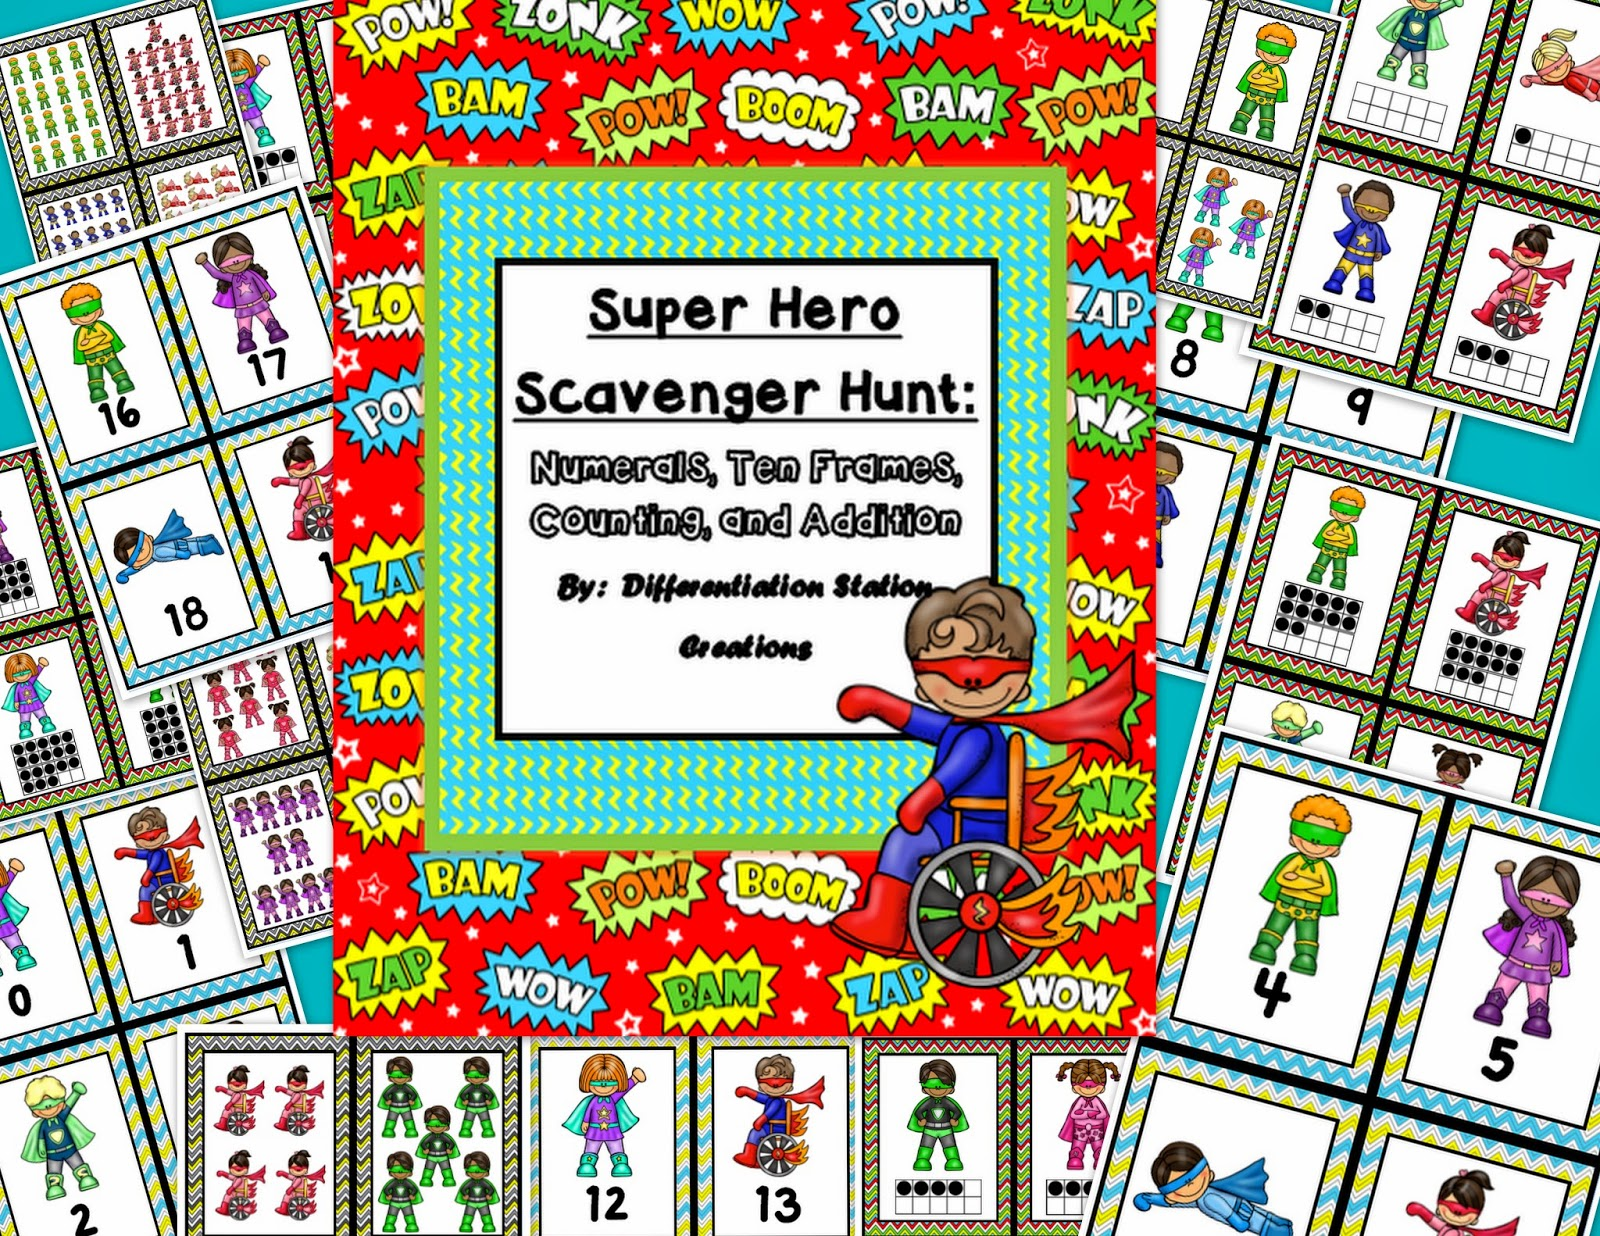 http://www.teacherspayteachers.com/Product/Super-Hero-Math-Scavenger-Hunt-Numerals-Ten-Frames-Counting-Cardinality-1168014